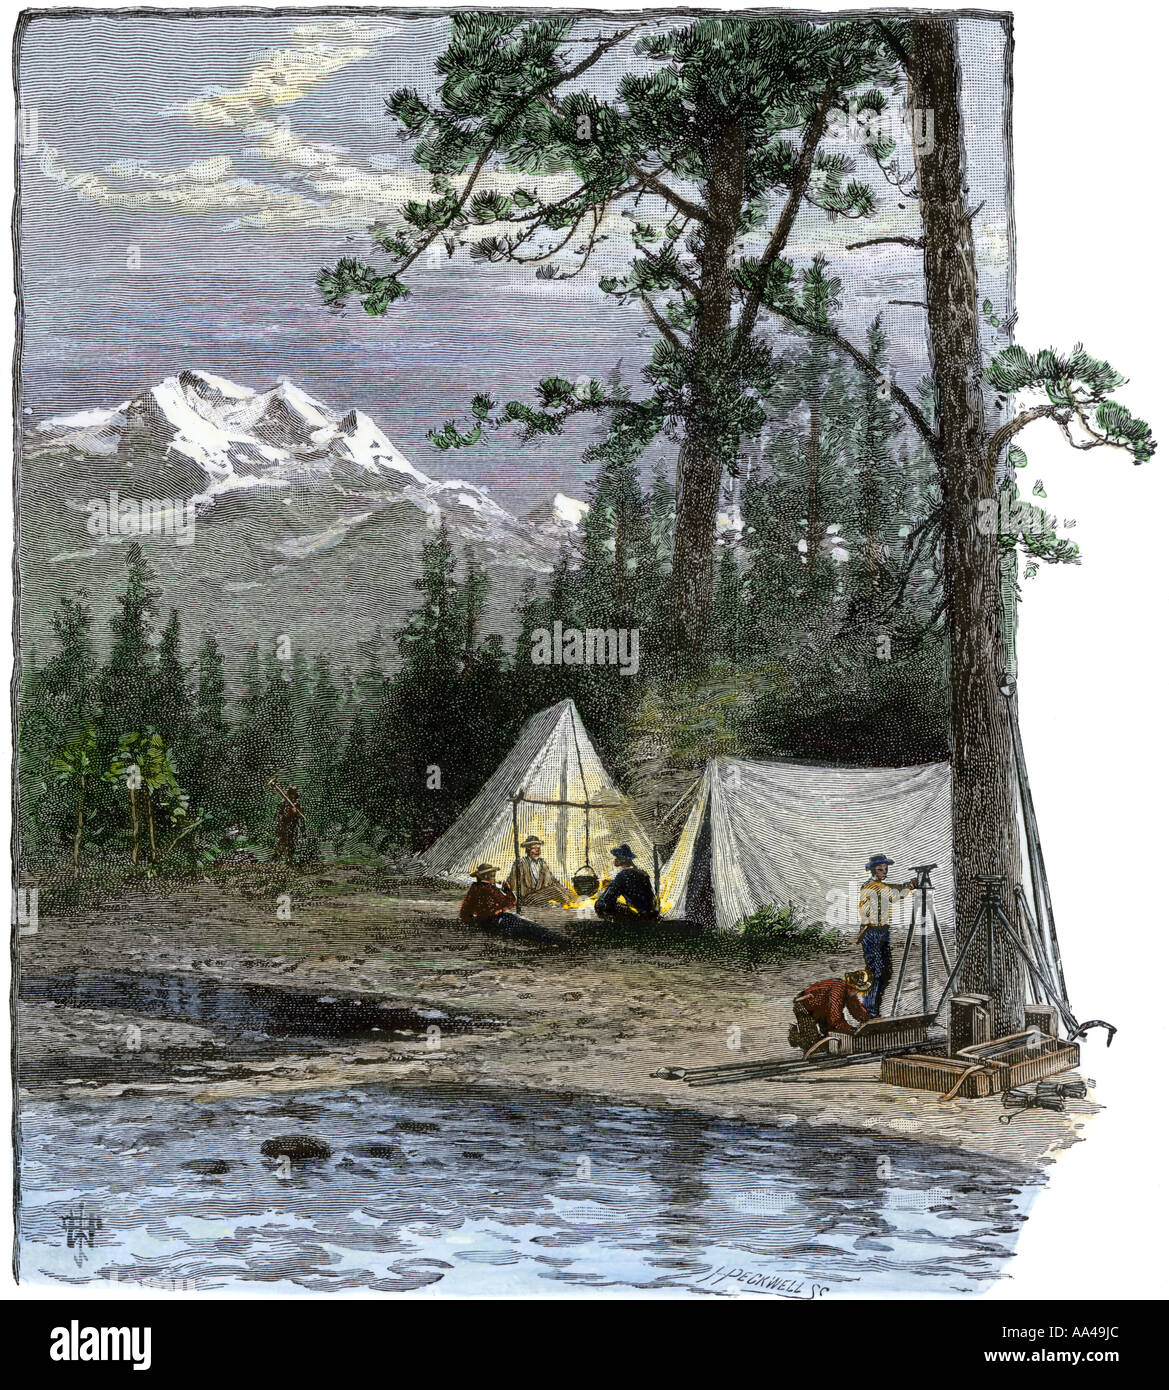 Surveyors for the railroad and their expedition in camp in the Rocky Mountains 1800s. Hand-colored woodcut - Stock Image